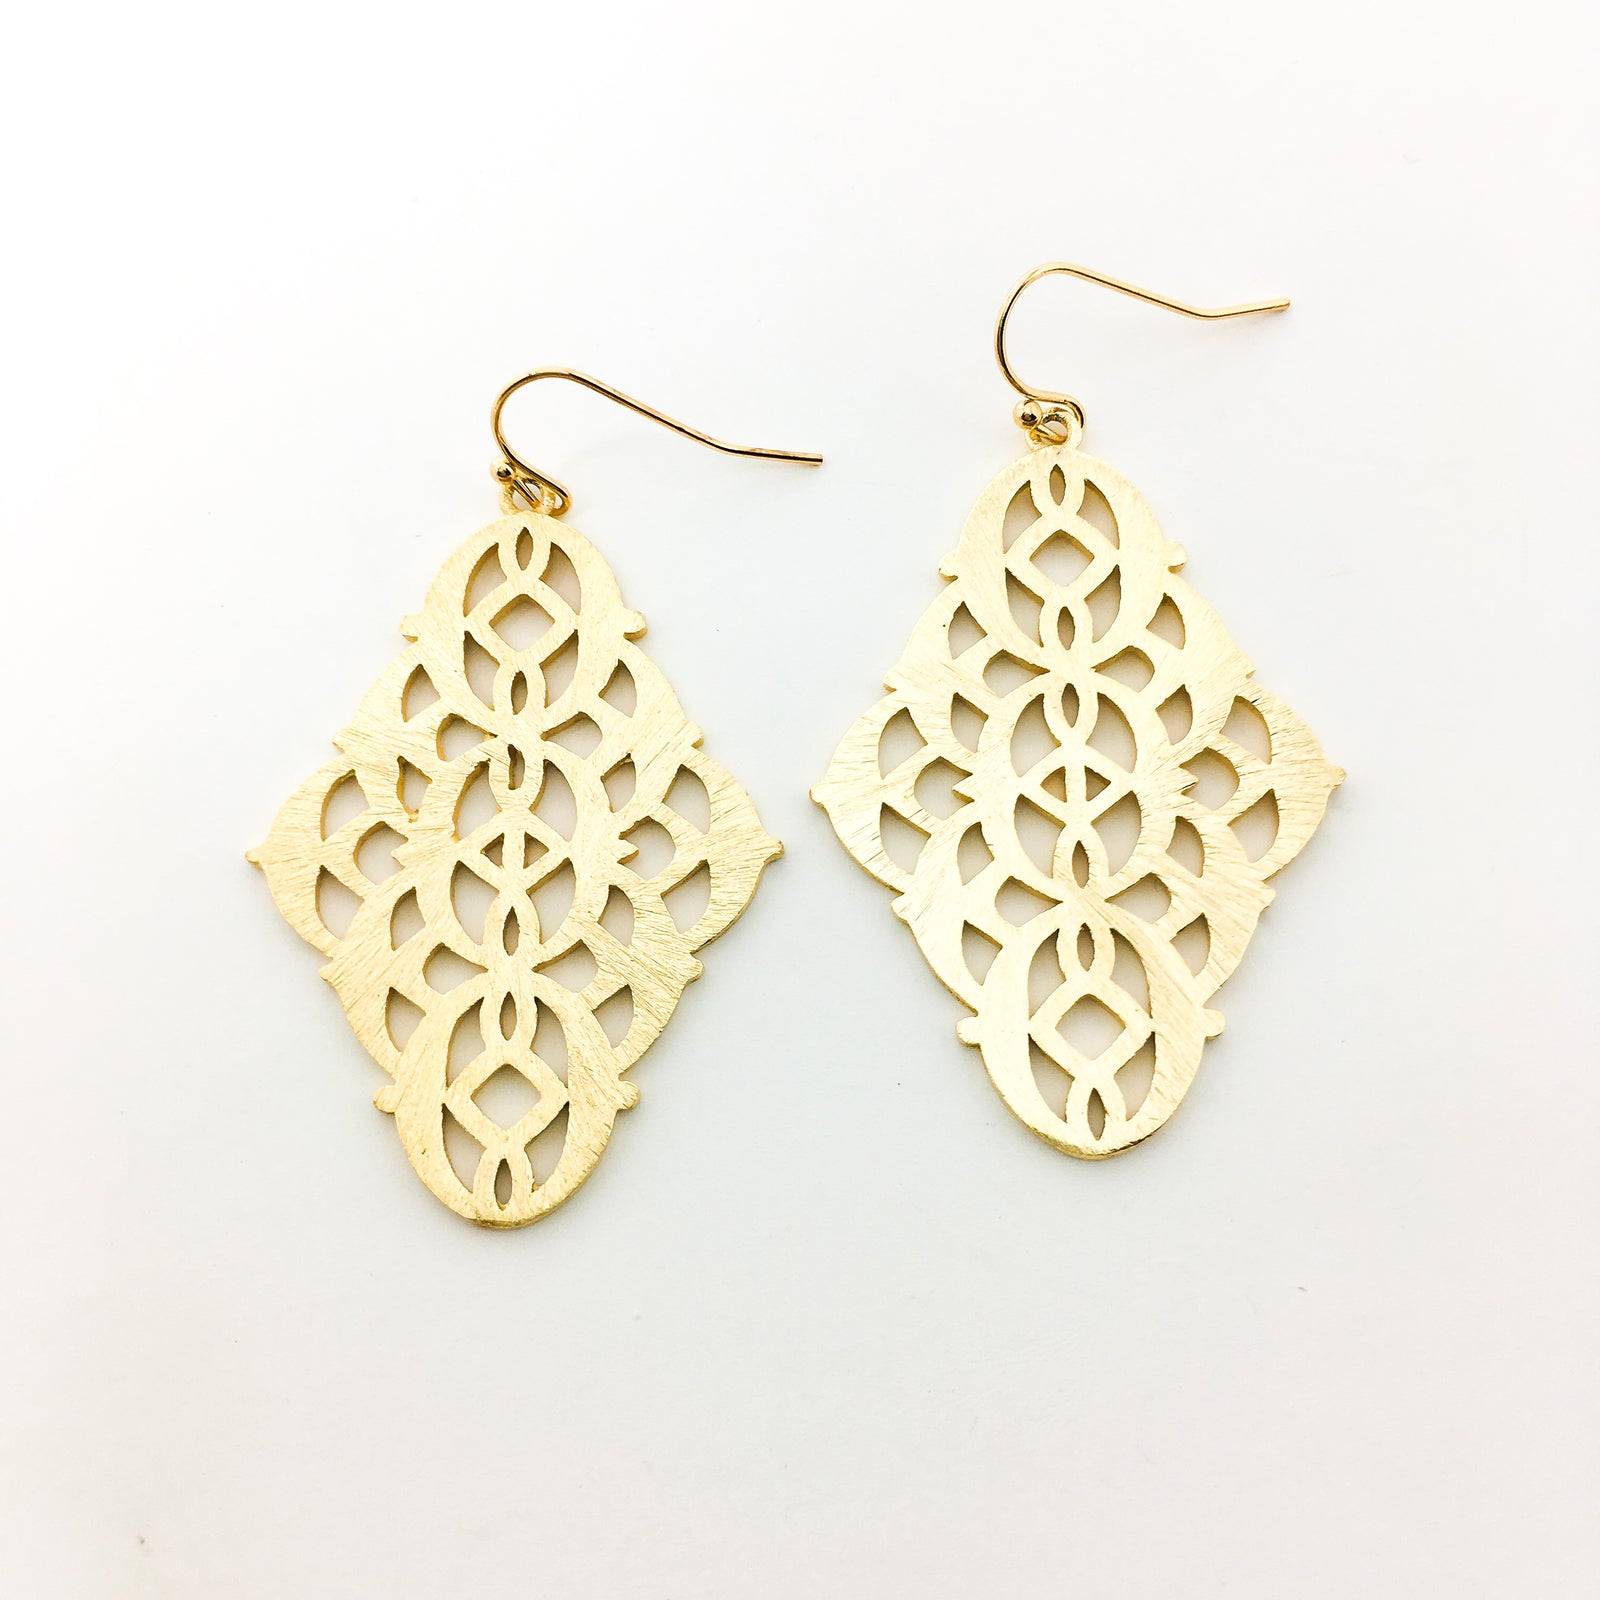 BRUSHED PATTERNED INDIAN EARRINGS | 14K GOLD-FILLED